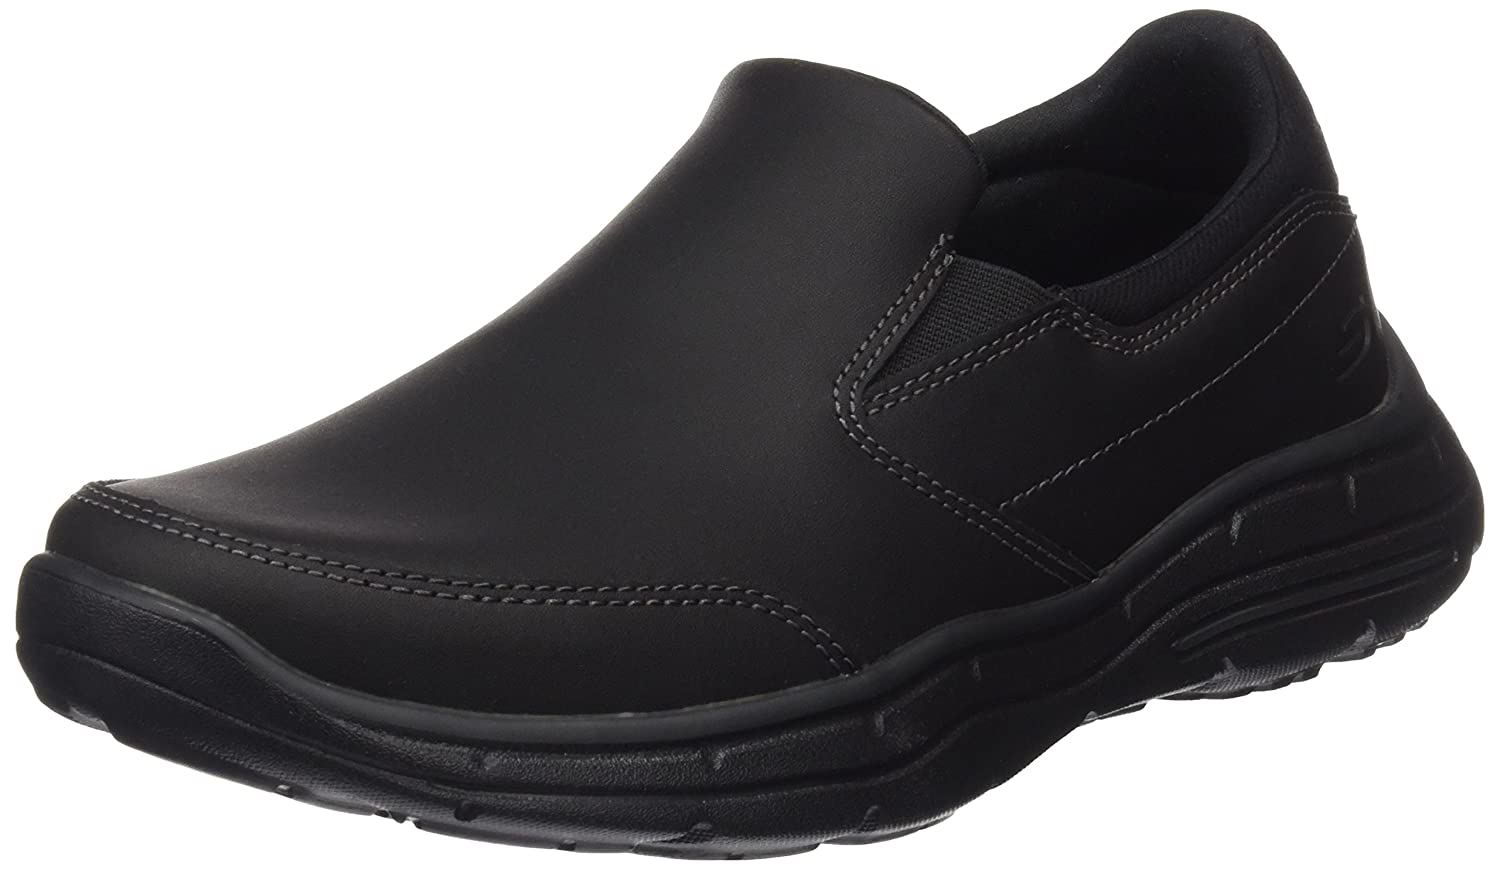 Skechers Men's Skechers Men' s 64589